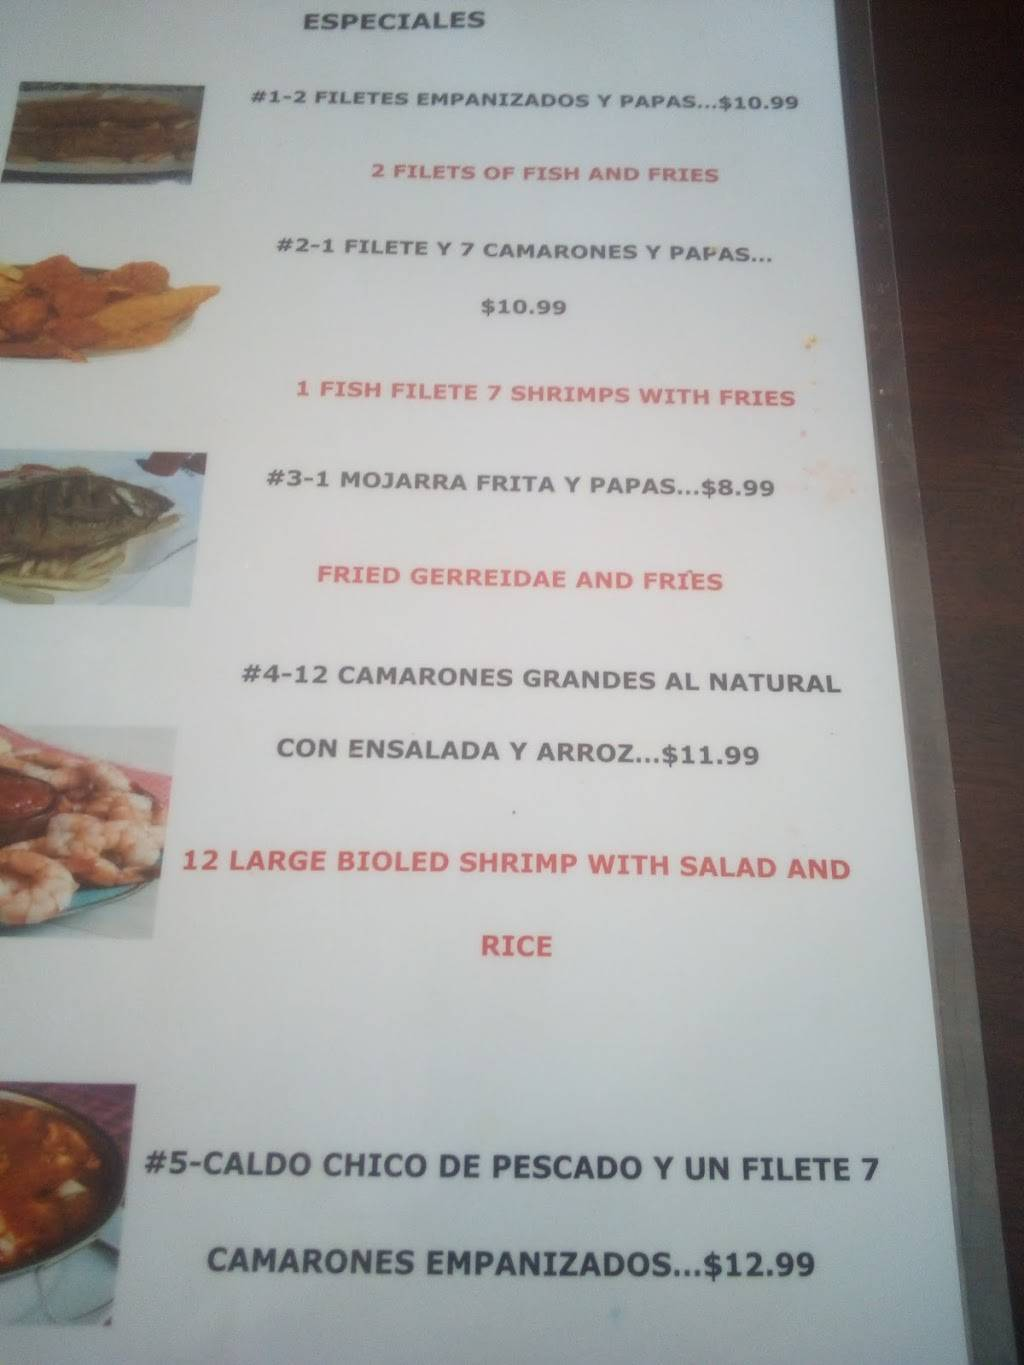 7 Mares Ostioneria #6 Seafood | restaurant | 2411 W Ave M, Temple, TX 76504, USA | 2145490313 OR +1 214-549-0313